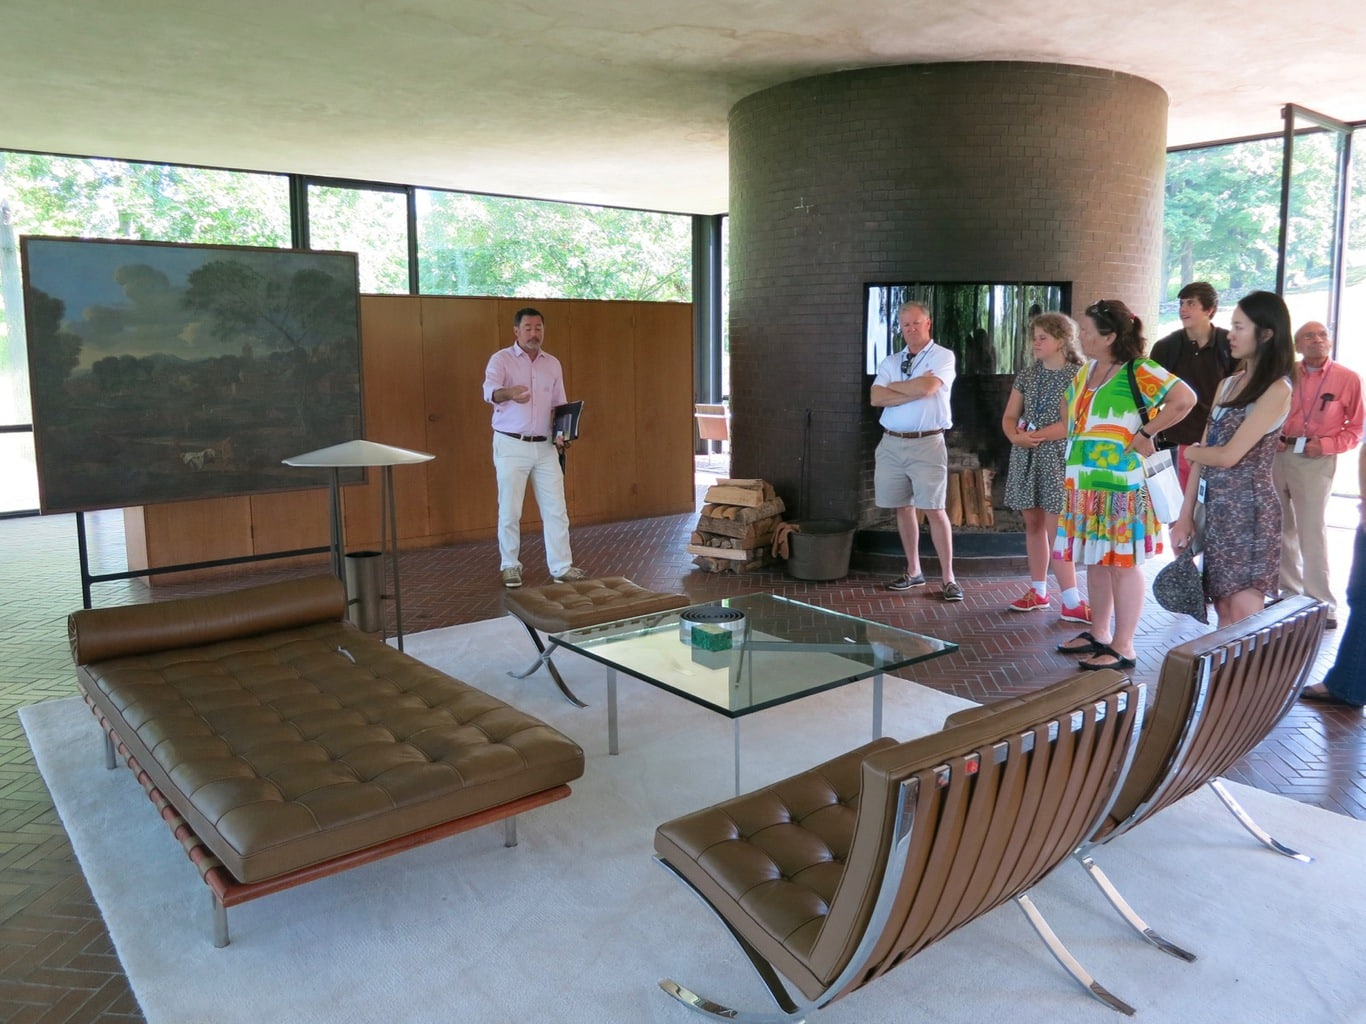 Interior of Philip Johnson's Glass House, New Canaan CT